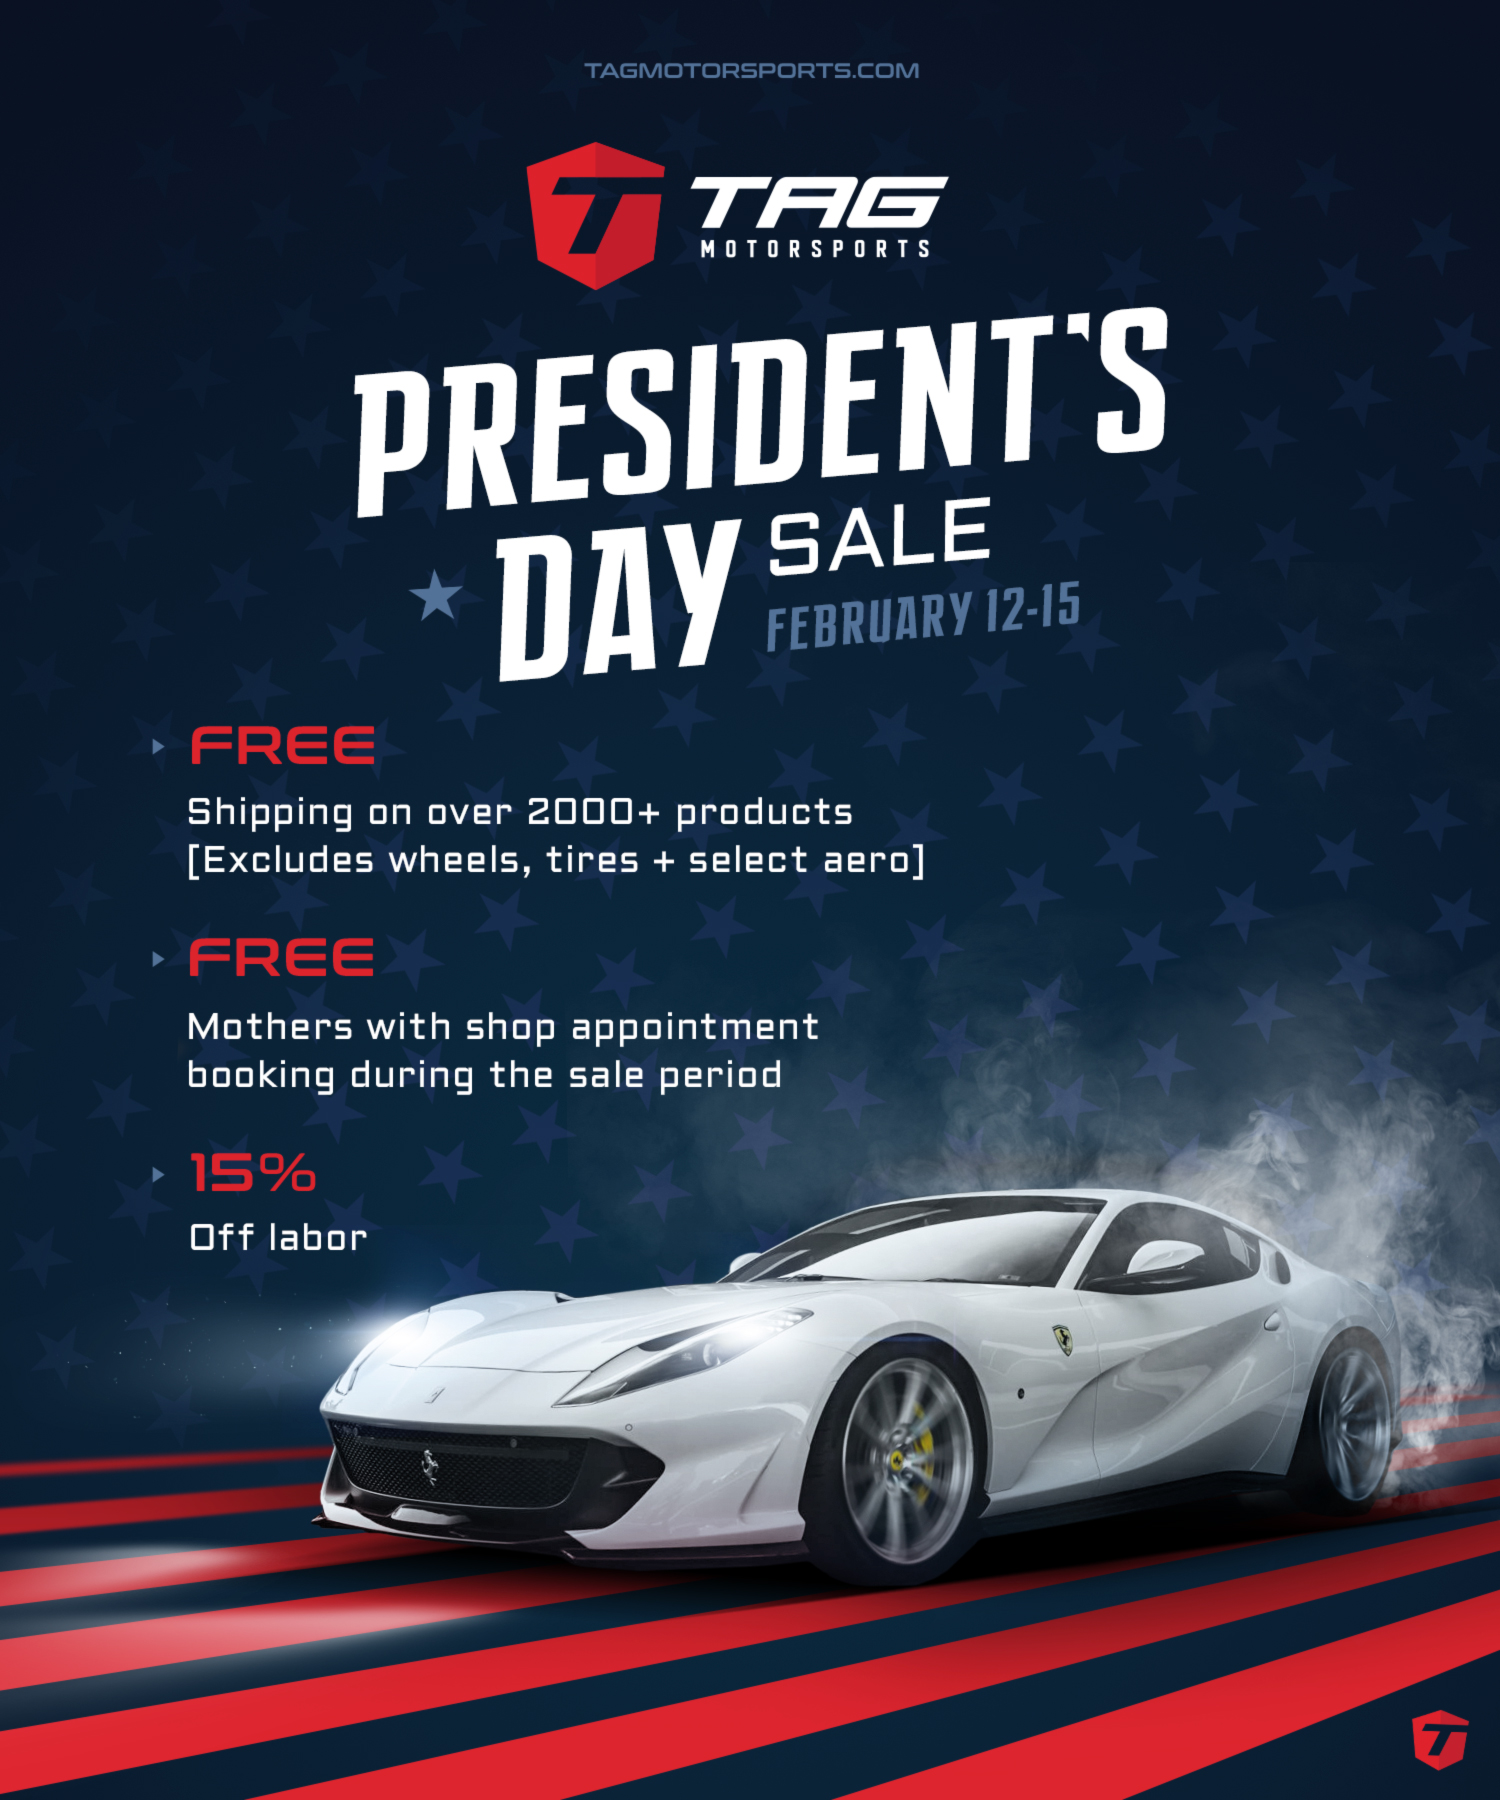 PRESIDENT'S DAY SALE THIS WEEKEND! FEBRUARY 12-15